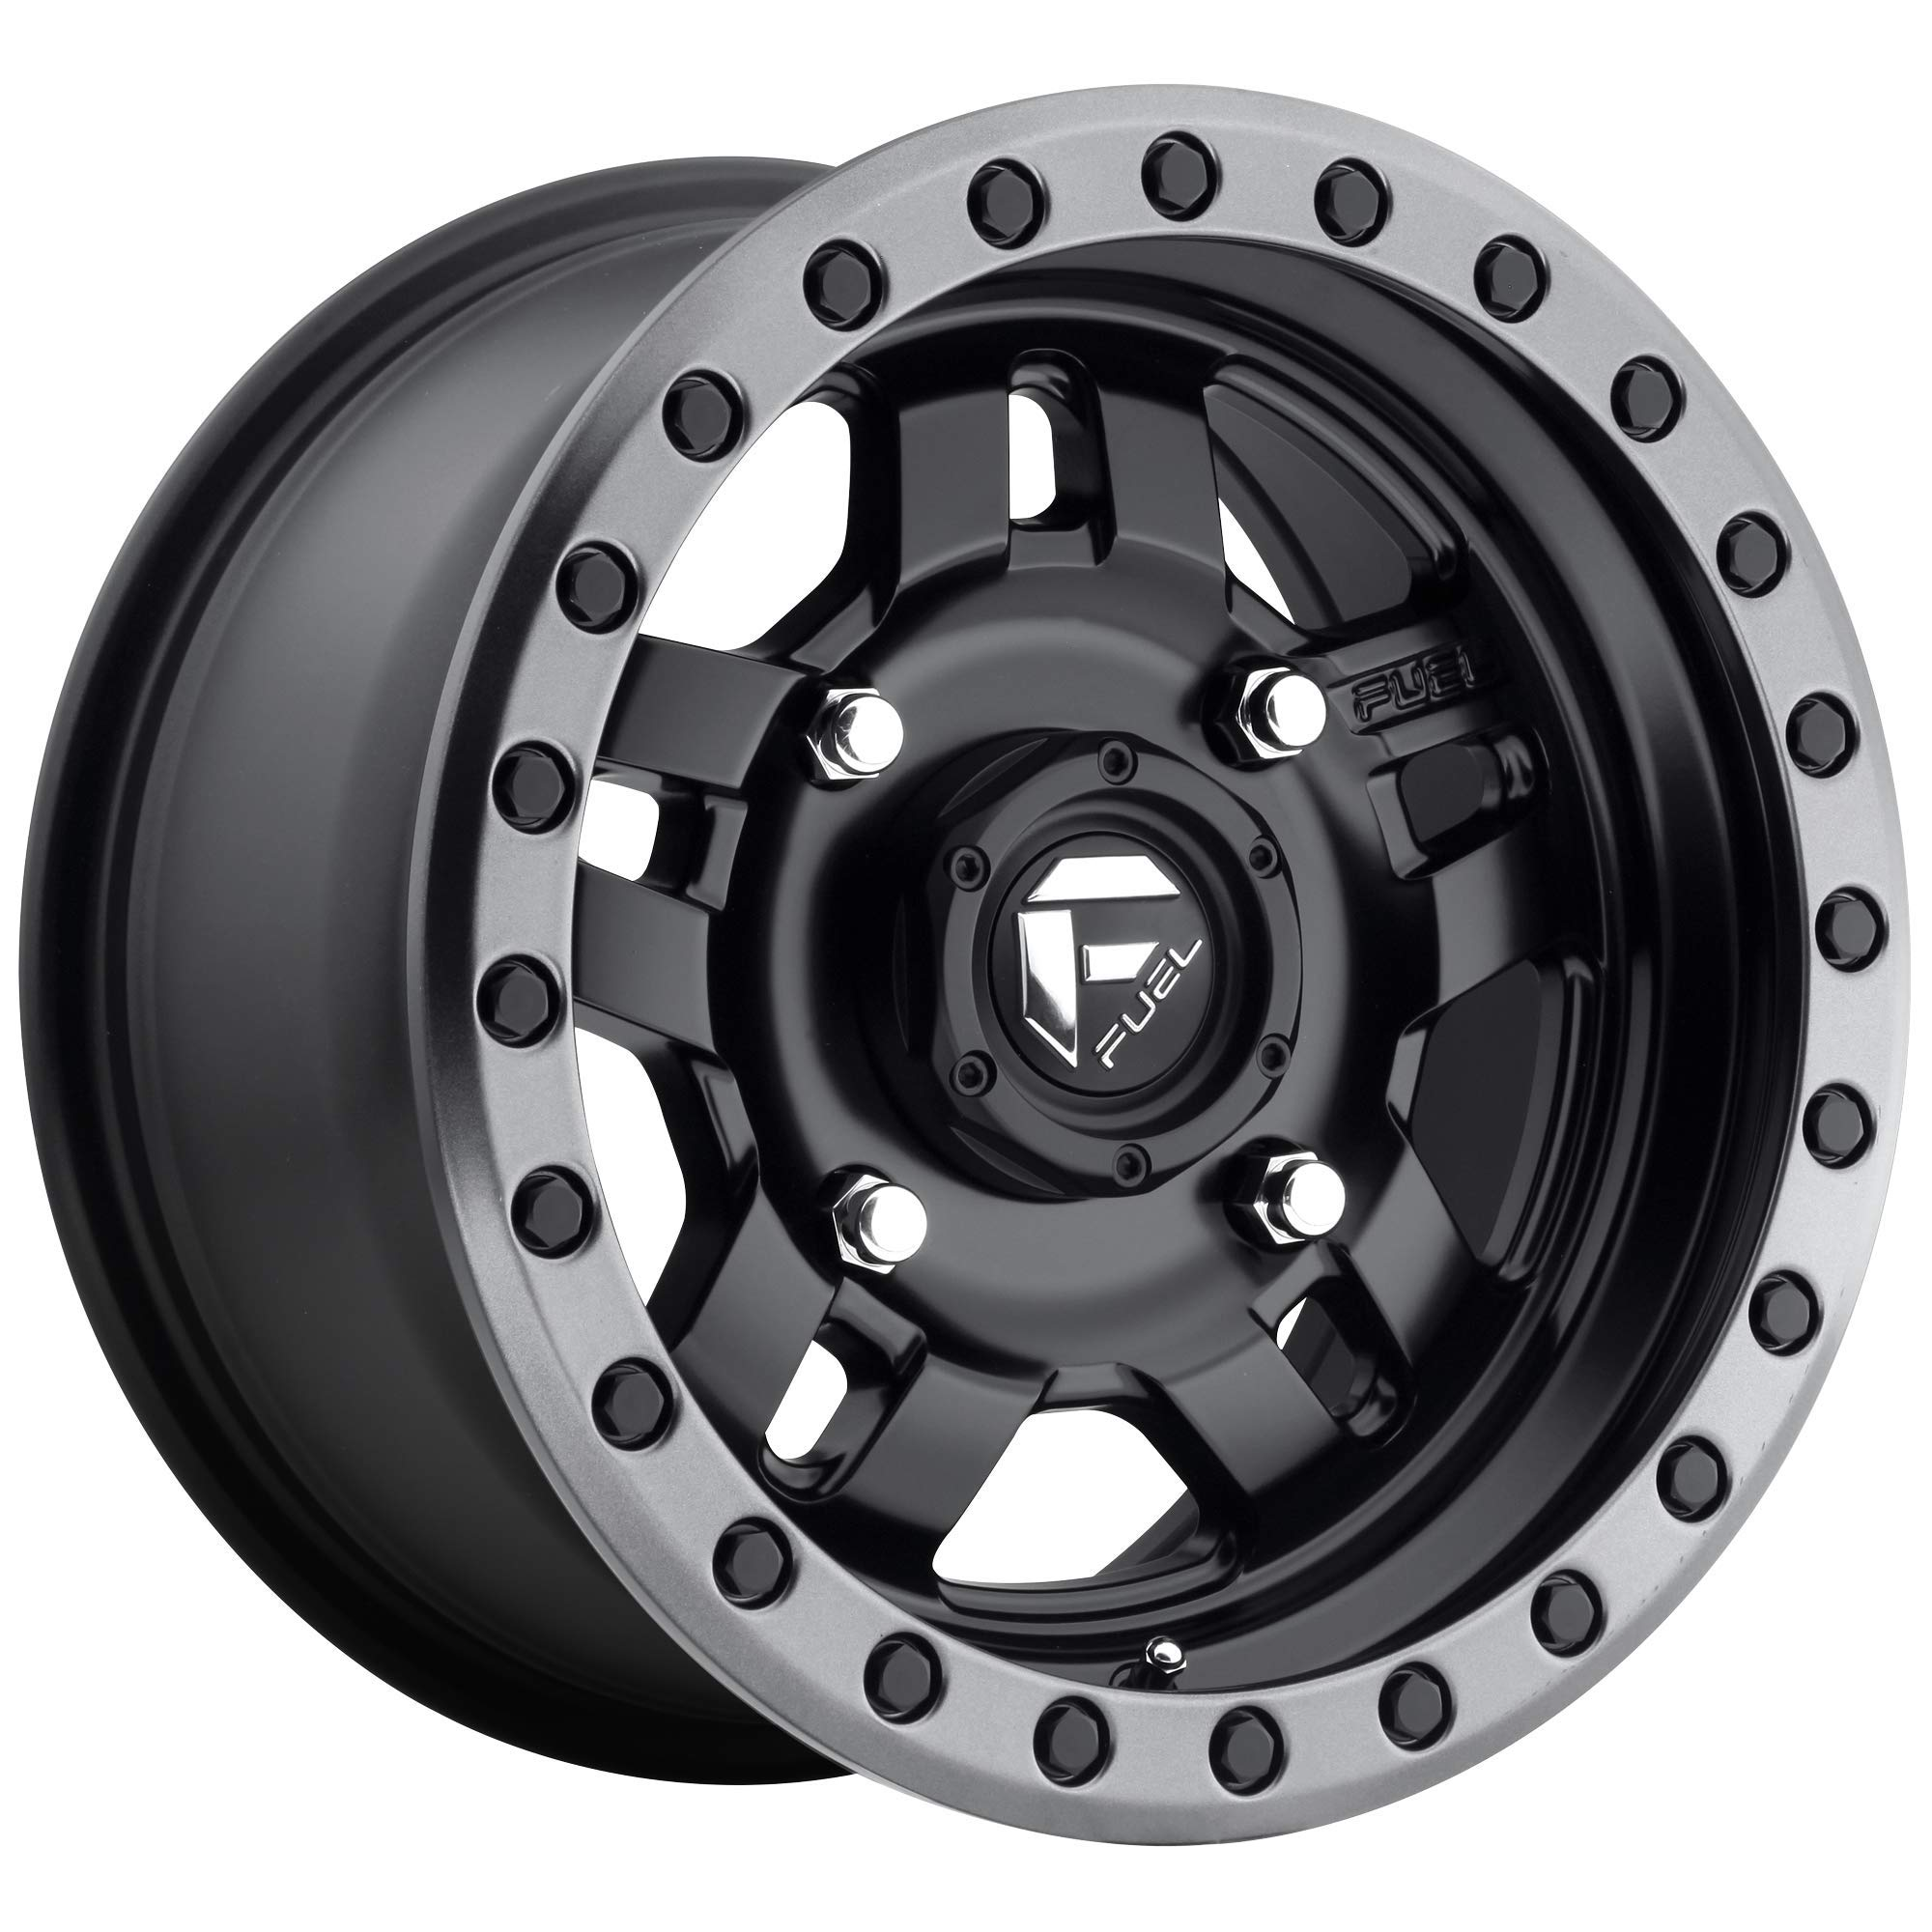 Fuel Offroad D557 ANZA BLACK Wheel with Painted and tpms (17 x 8.5 inches /5 x 127 mm, 6 mm Offset)